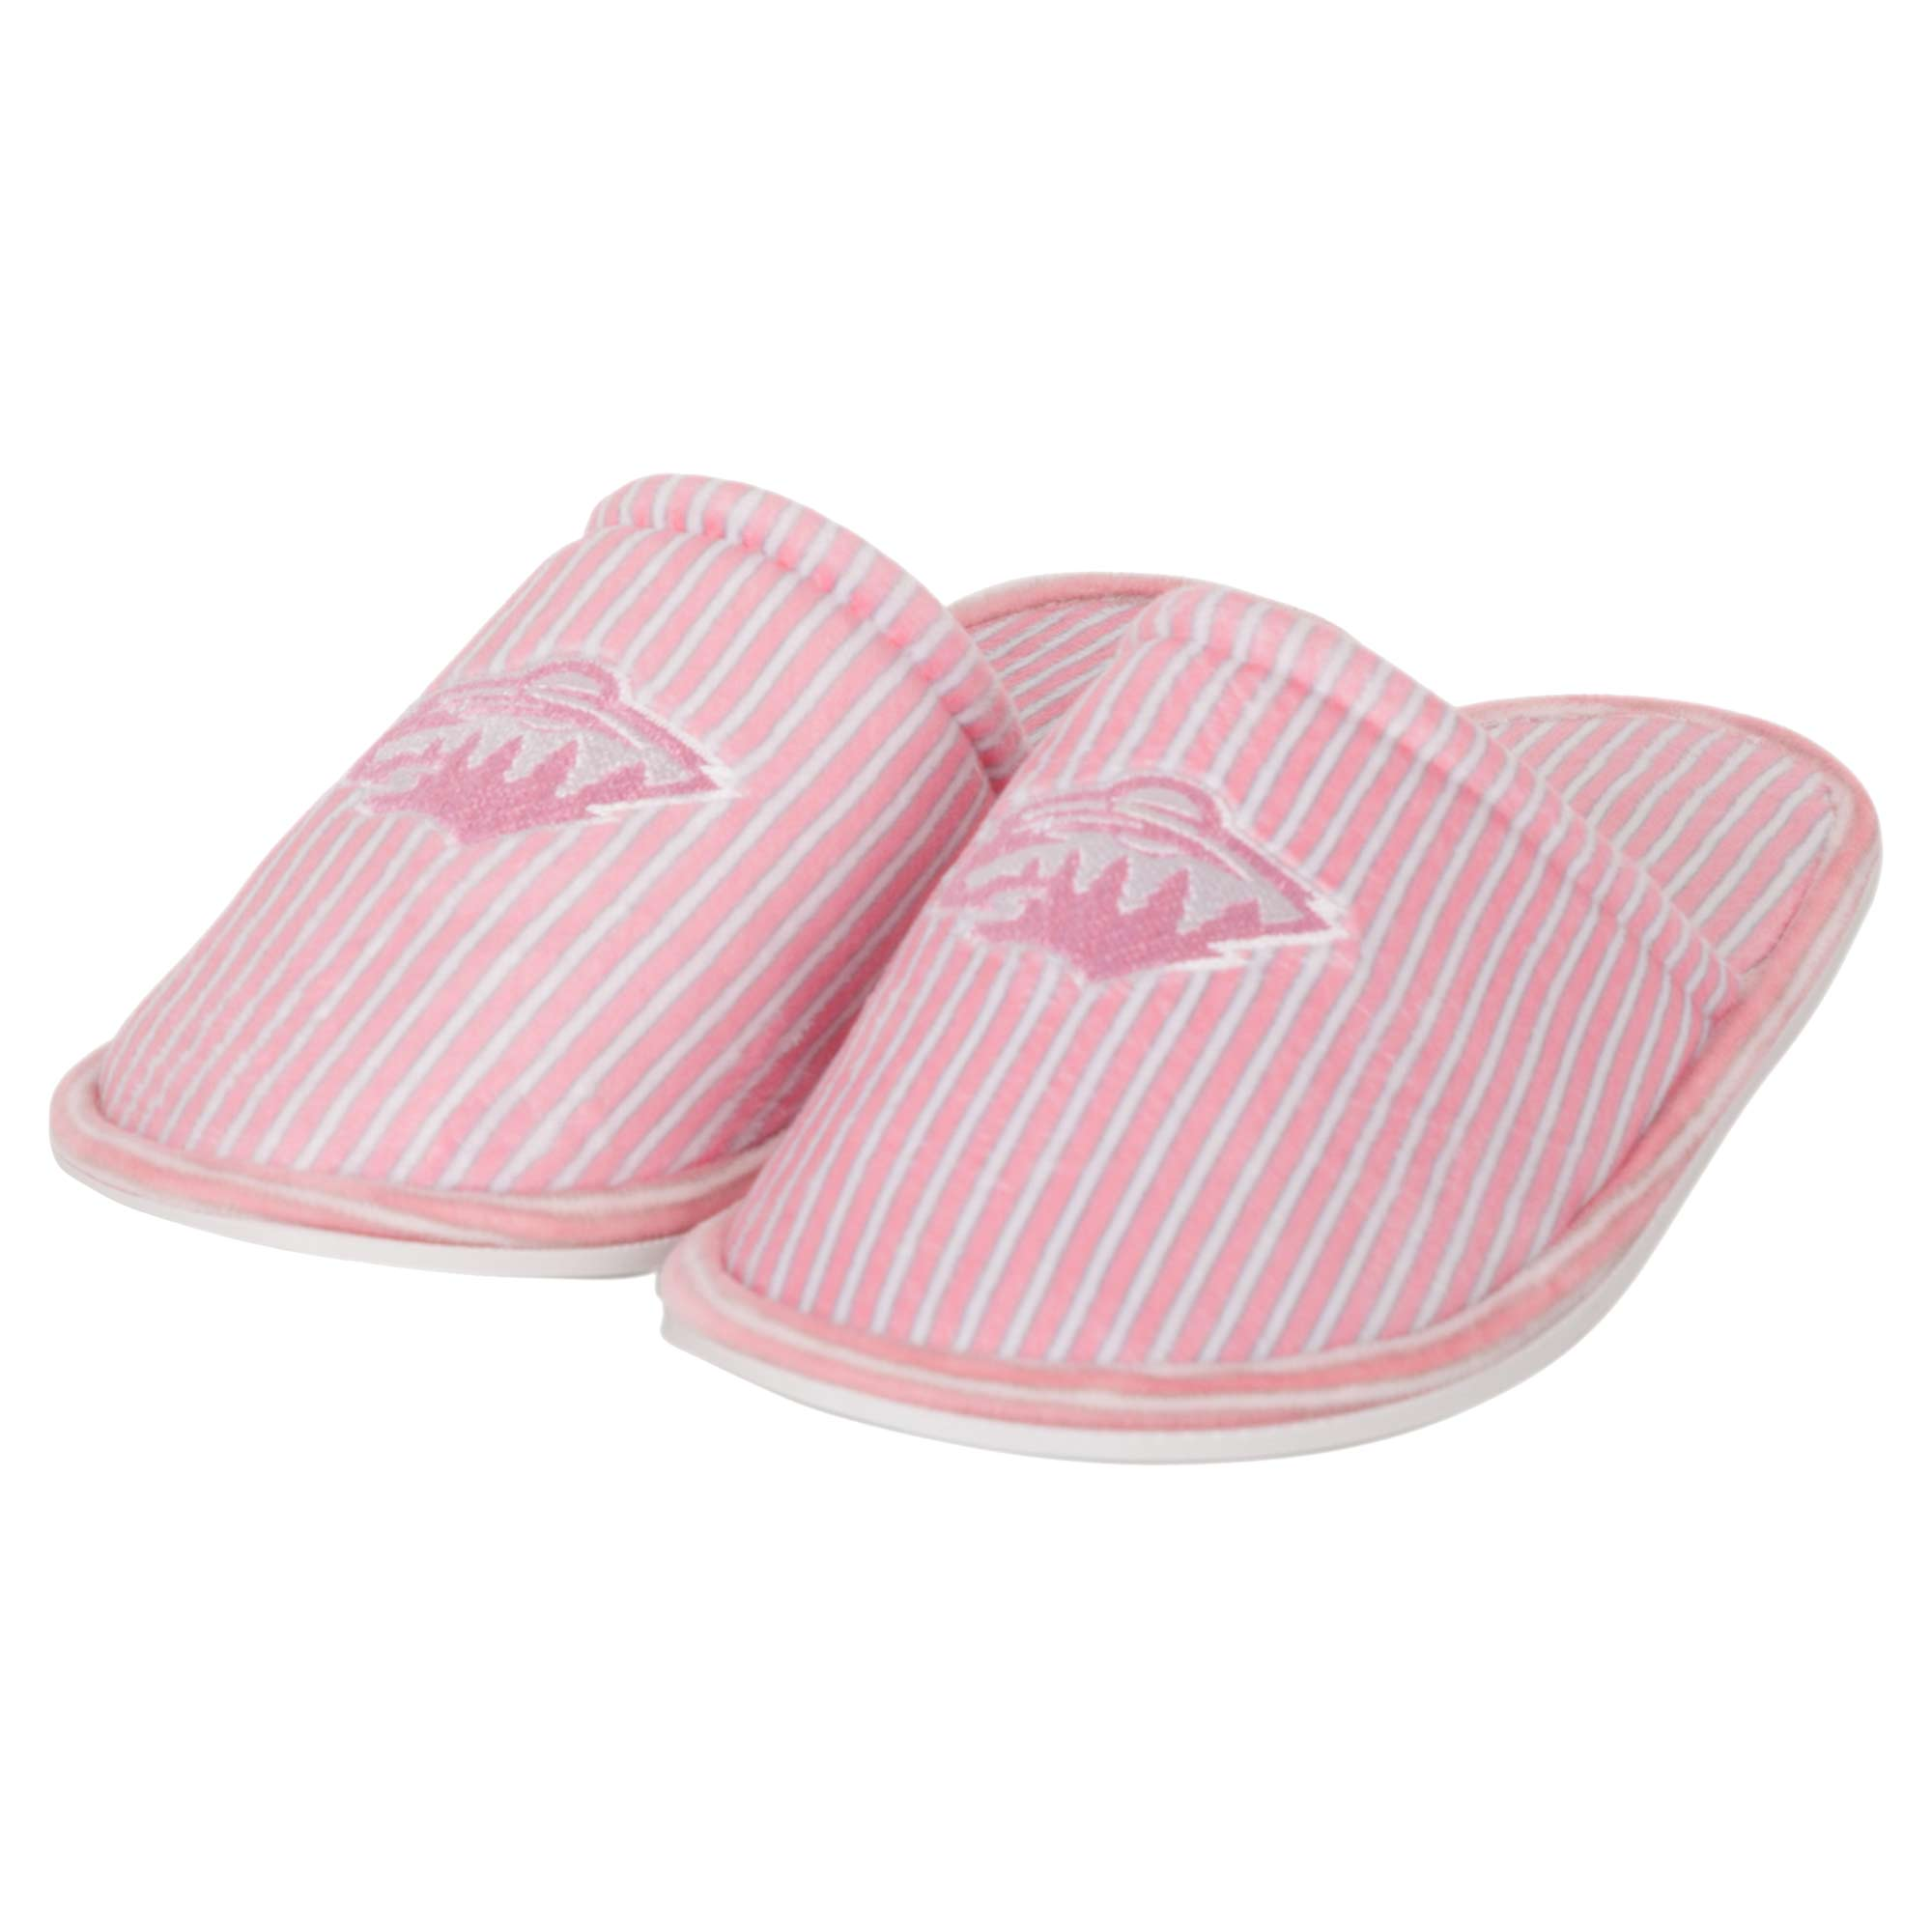 Minnesota Wild Women's Slide Slipper - Pink